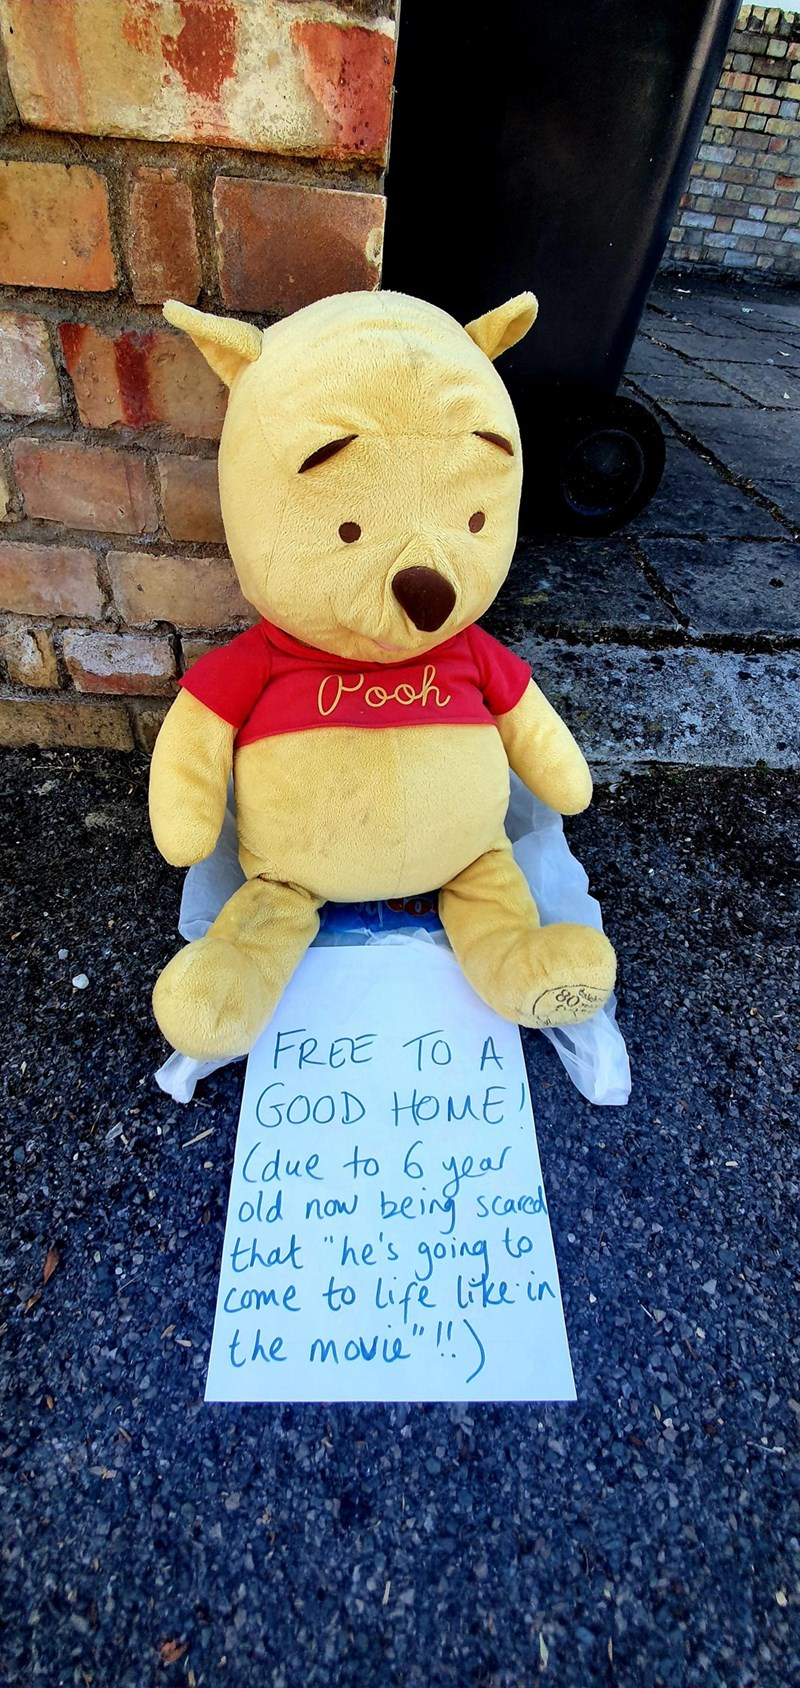 """Stuffed toy - Pooh 80 FREE TO A GOOD HOME (due to 6 year old now being scared to going that """"he's come to life liice in the movie"""" !)"""